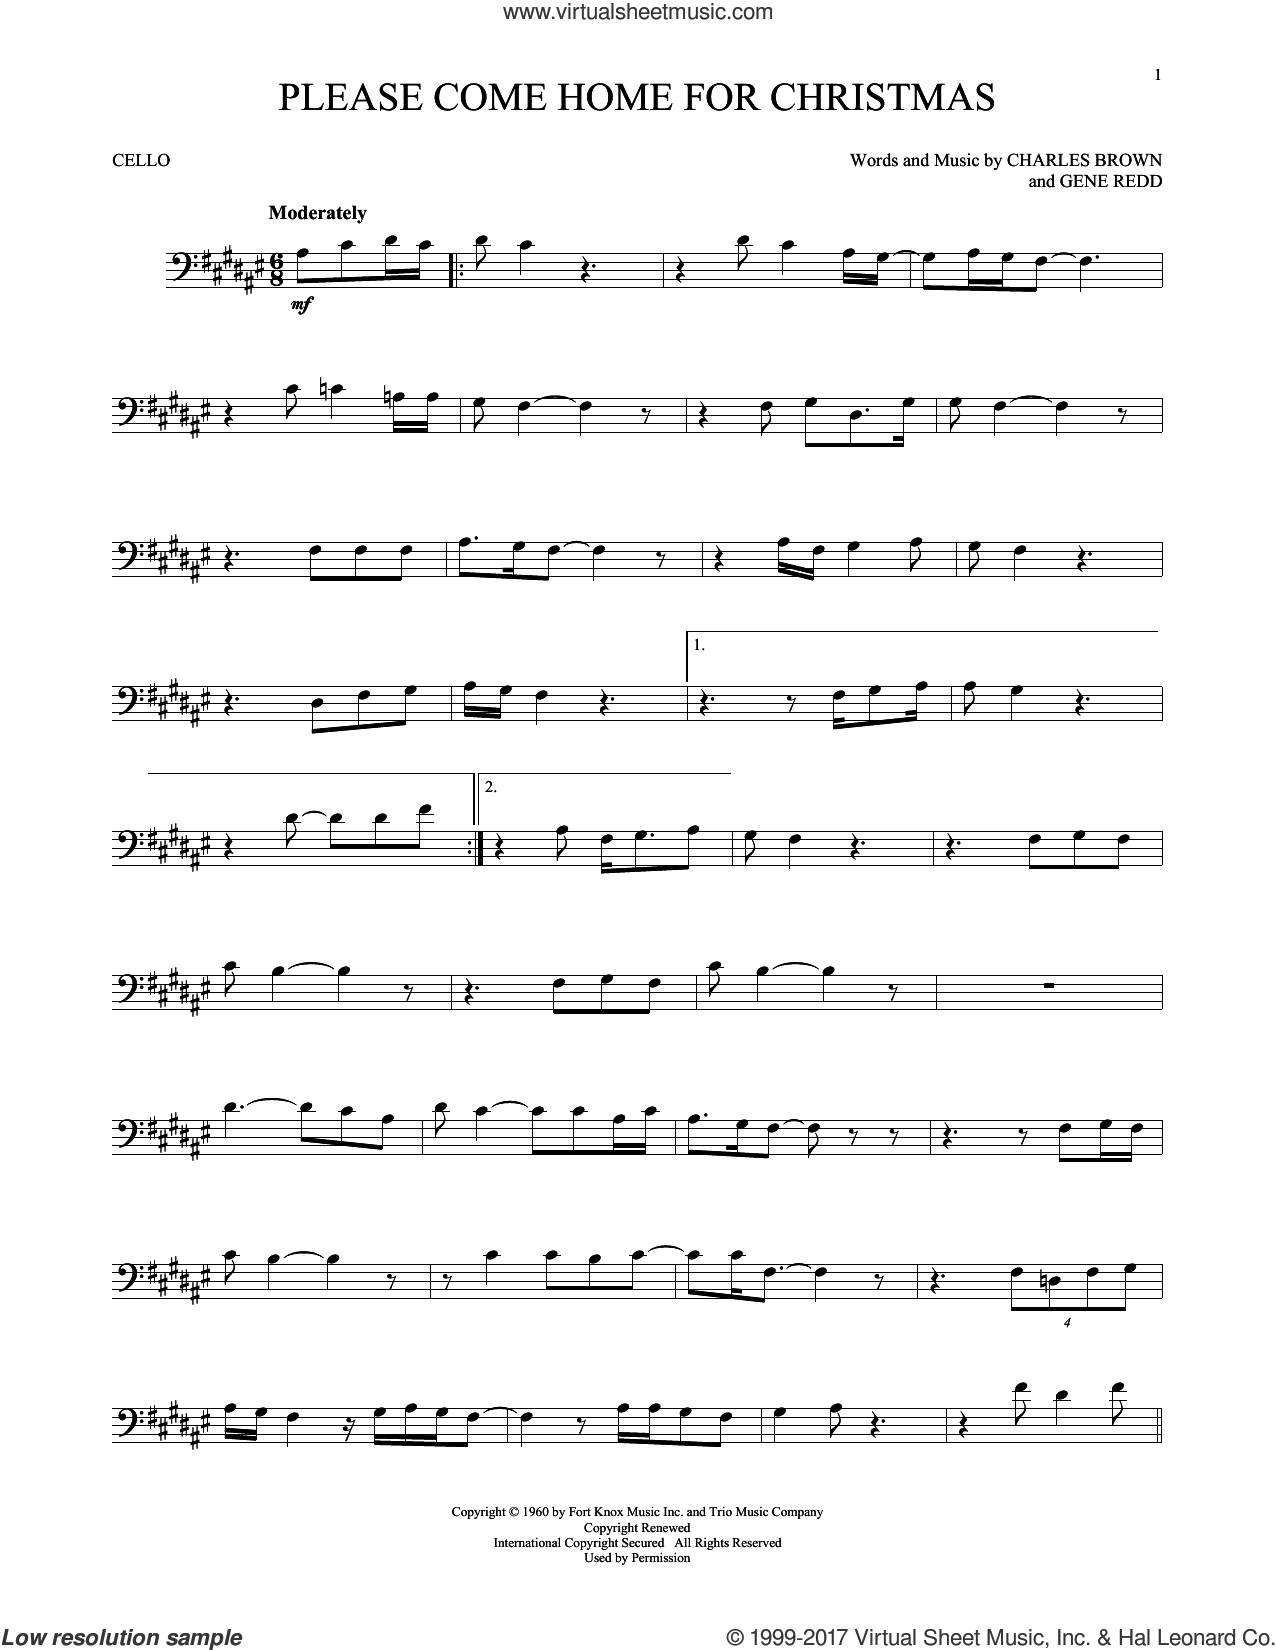 Please Come Home For Christmas sheet music for cello solo by Charles Brown, Josh Gracin, Martina McBride, Willie Nelson and Gene Redd, intermediate skill level